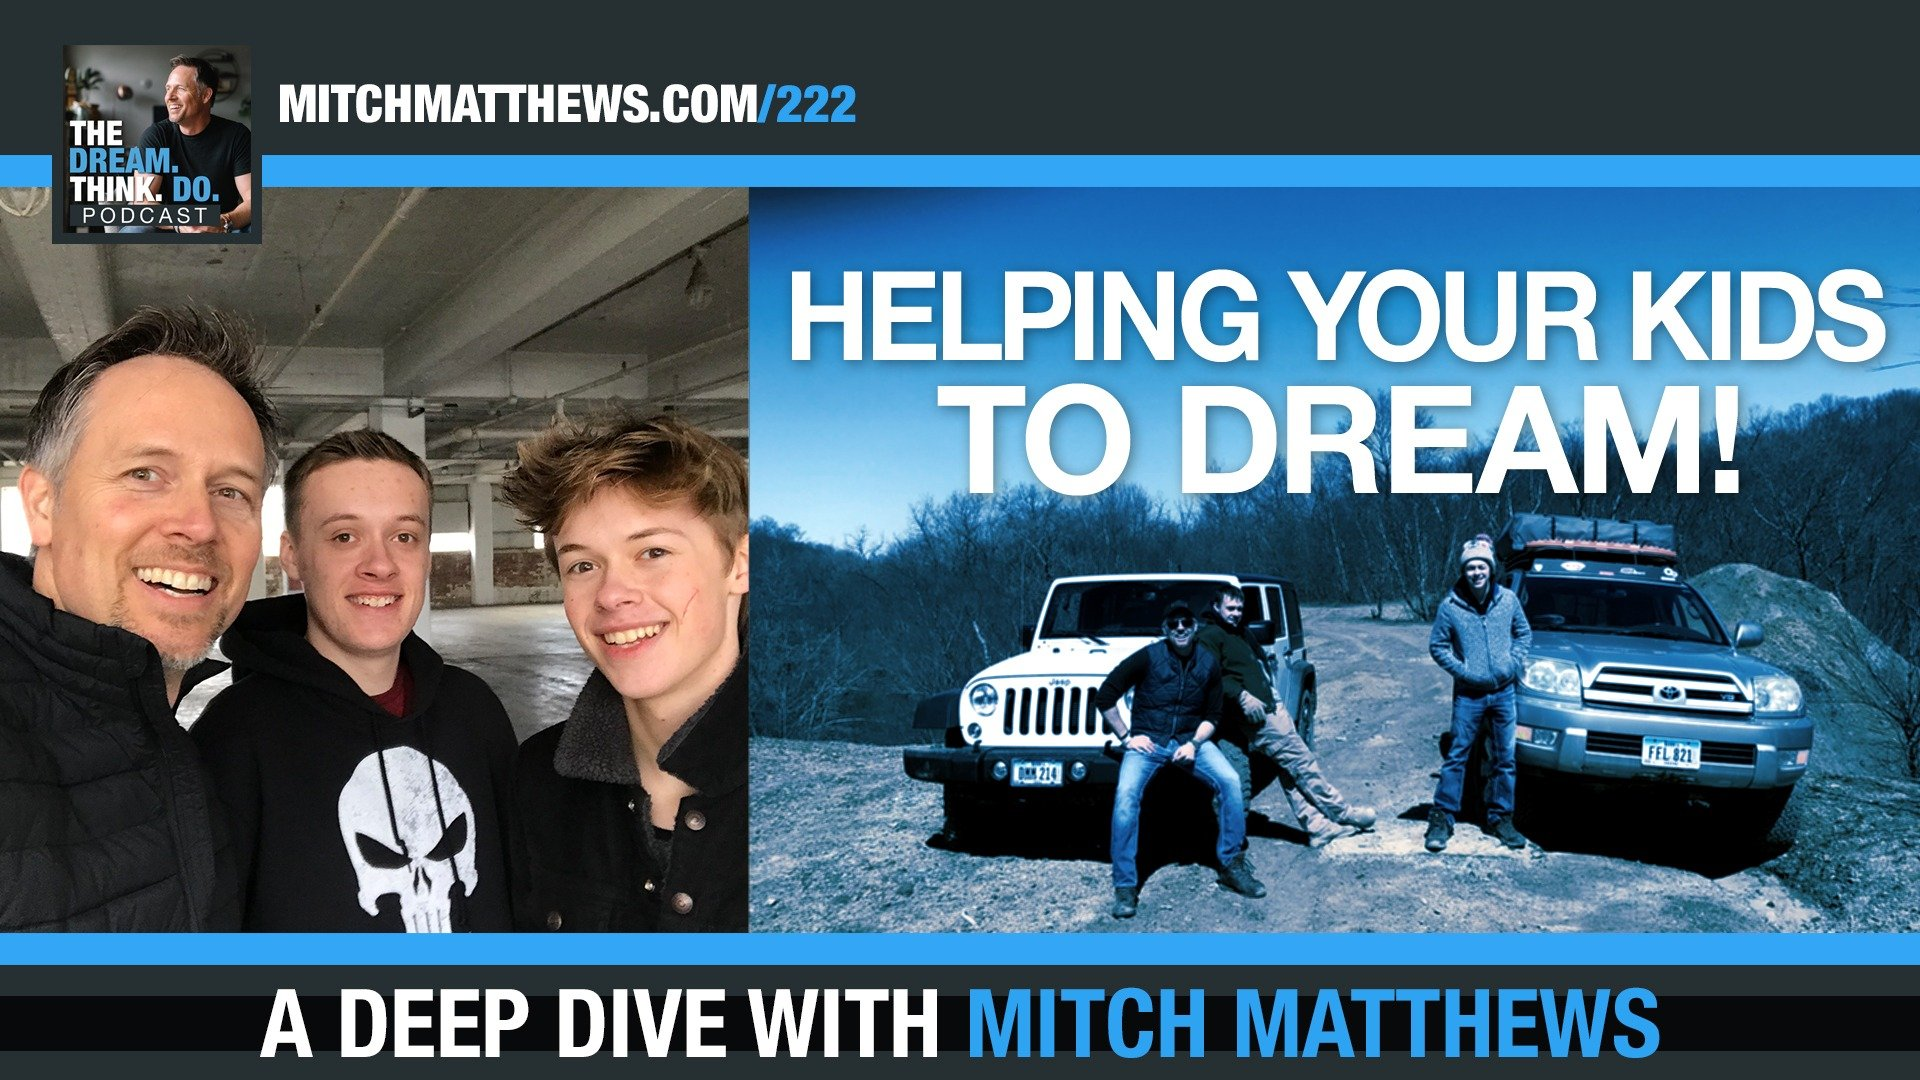 Helping Your Kids to Dream! With Mitch Matthews